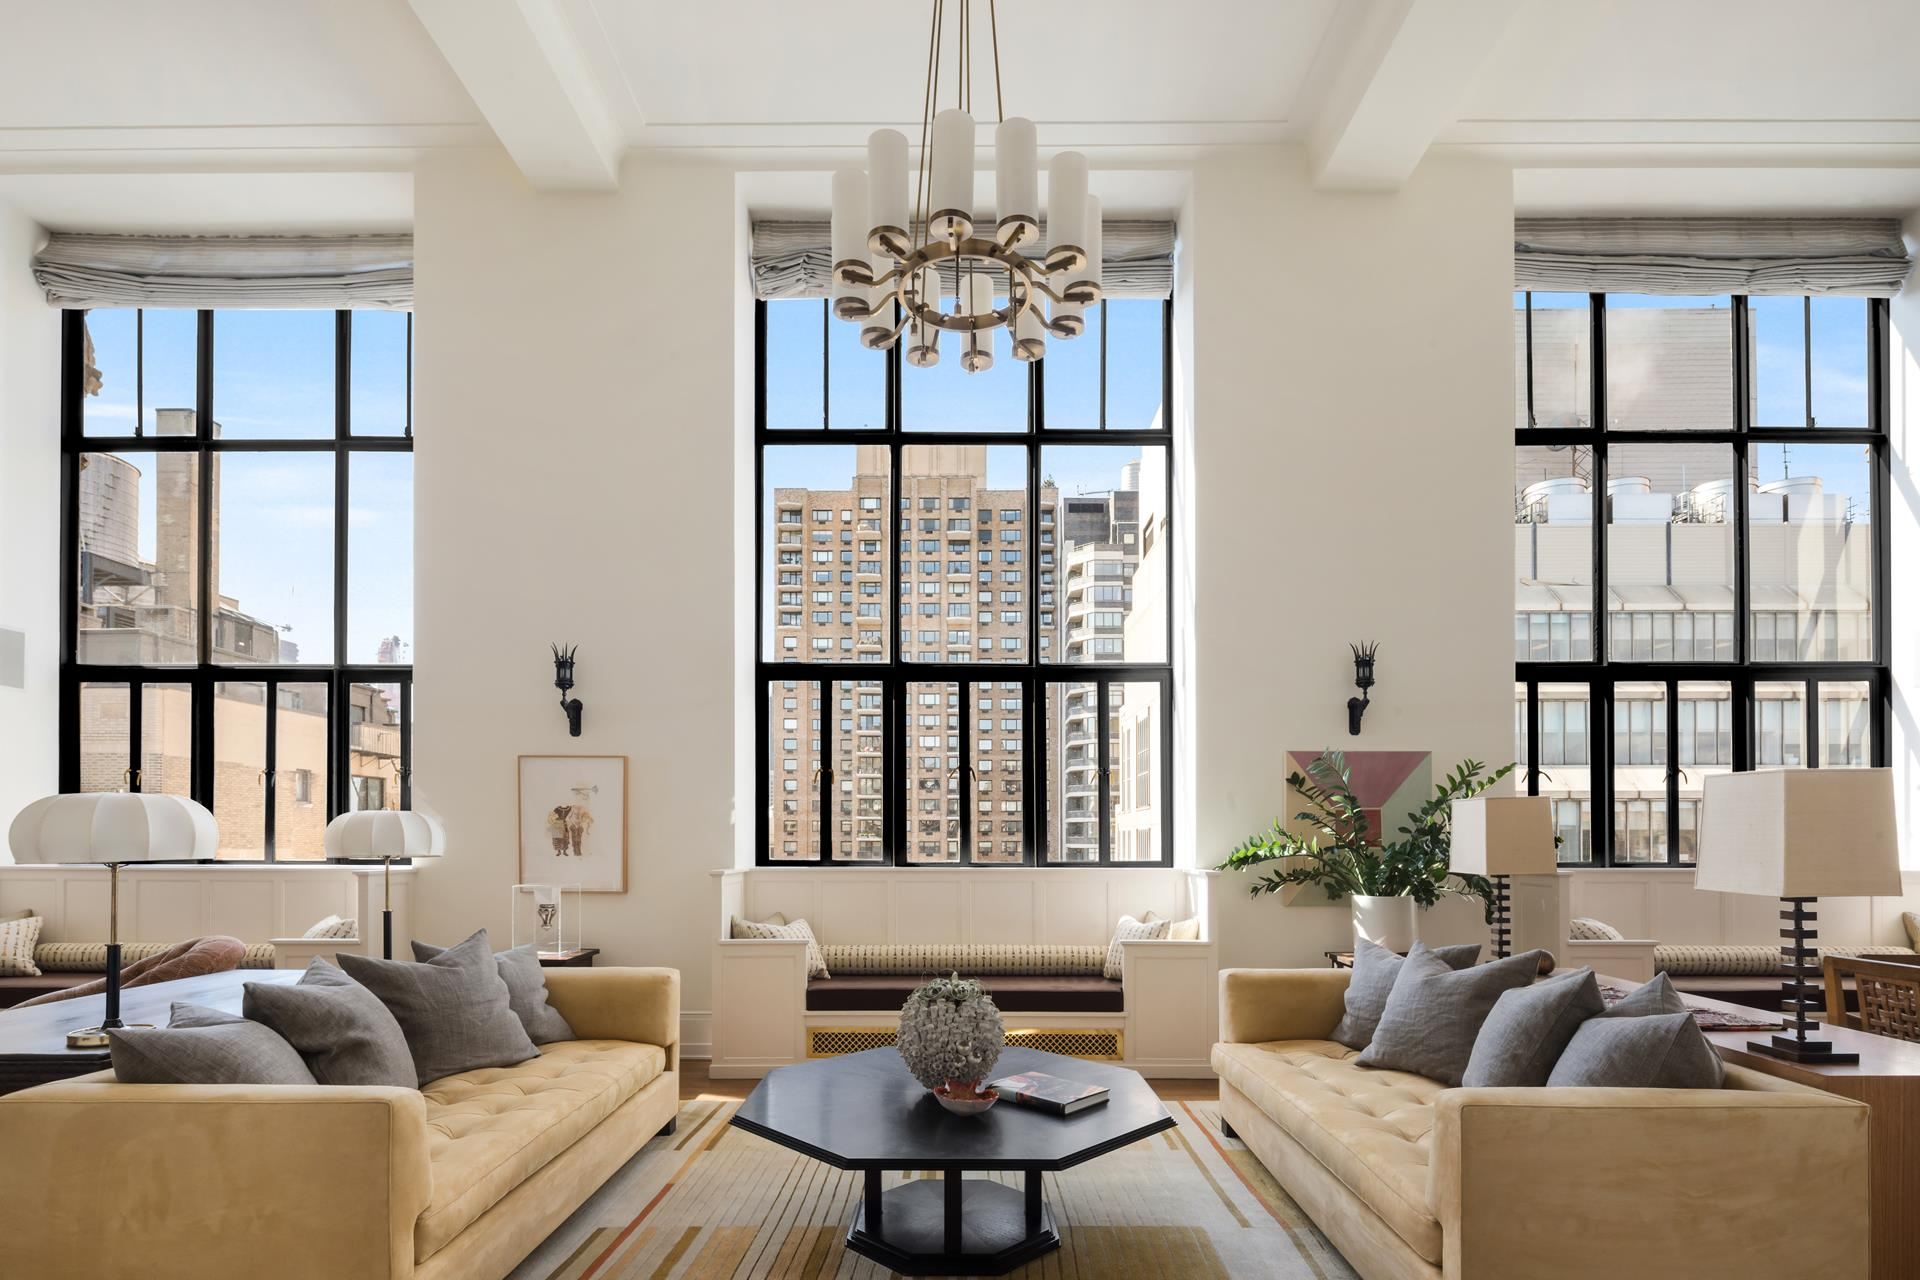 Co-op for Sale at Hotel des Artistes, 1 West 67th Street 909 1 West 67th Street New York, New York 10023 United States